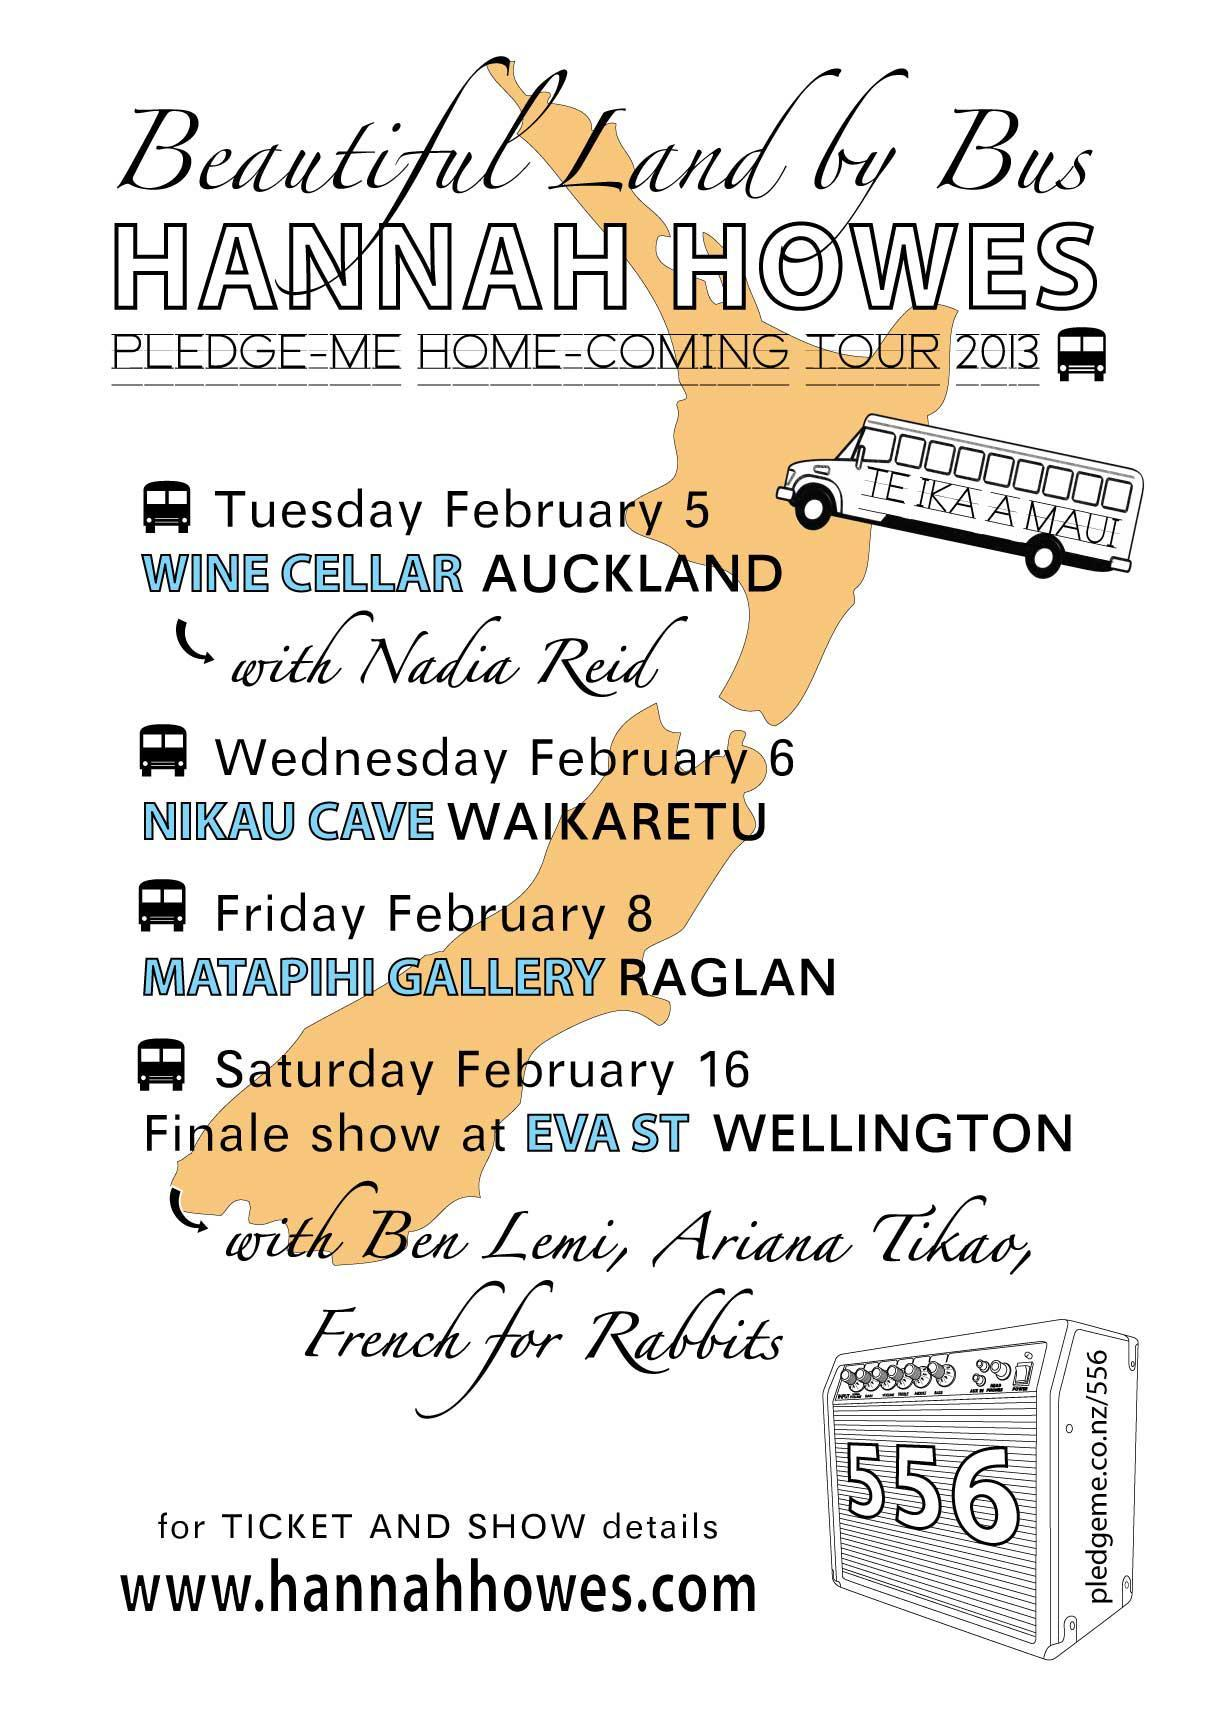 I am supporting Hannah Howes in Auckland City on Tuesday 5th January, Waitangi Day eve, so it ain't no school night. Miss Howes is fantastic. Her E.P Patchwork Quilt was a well-played record when I first started playing music. I'll have a new song of two… Doors 8pm, tenner on the door. X